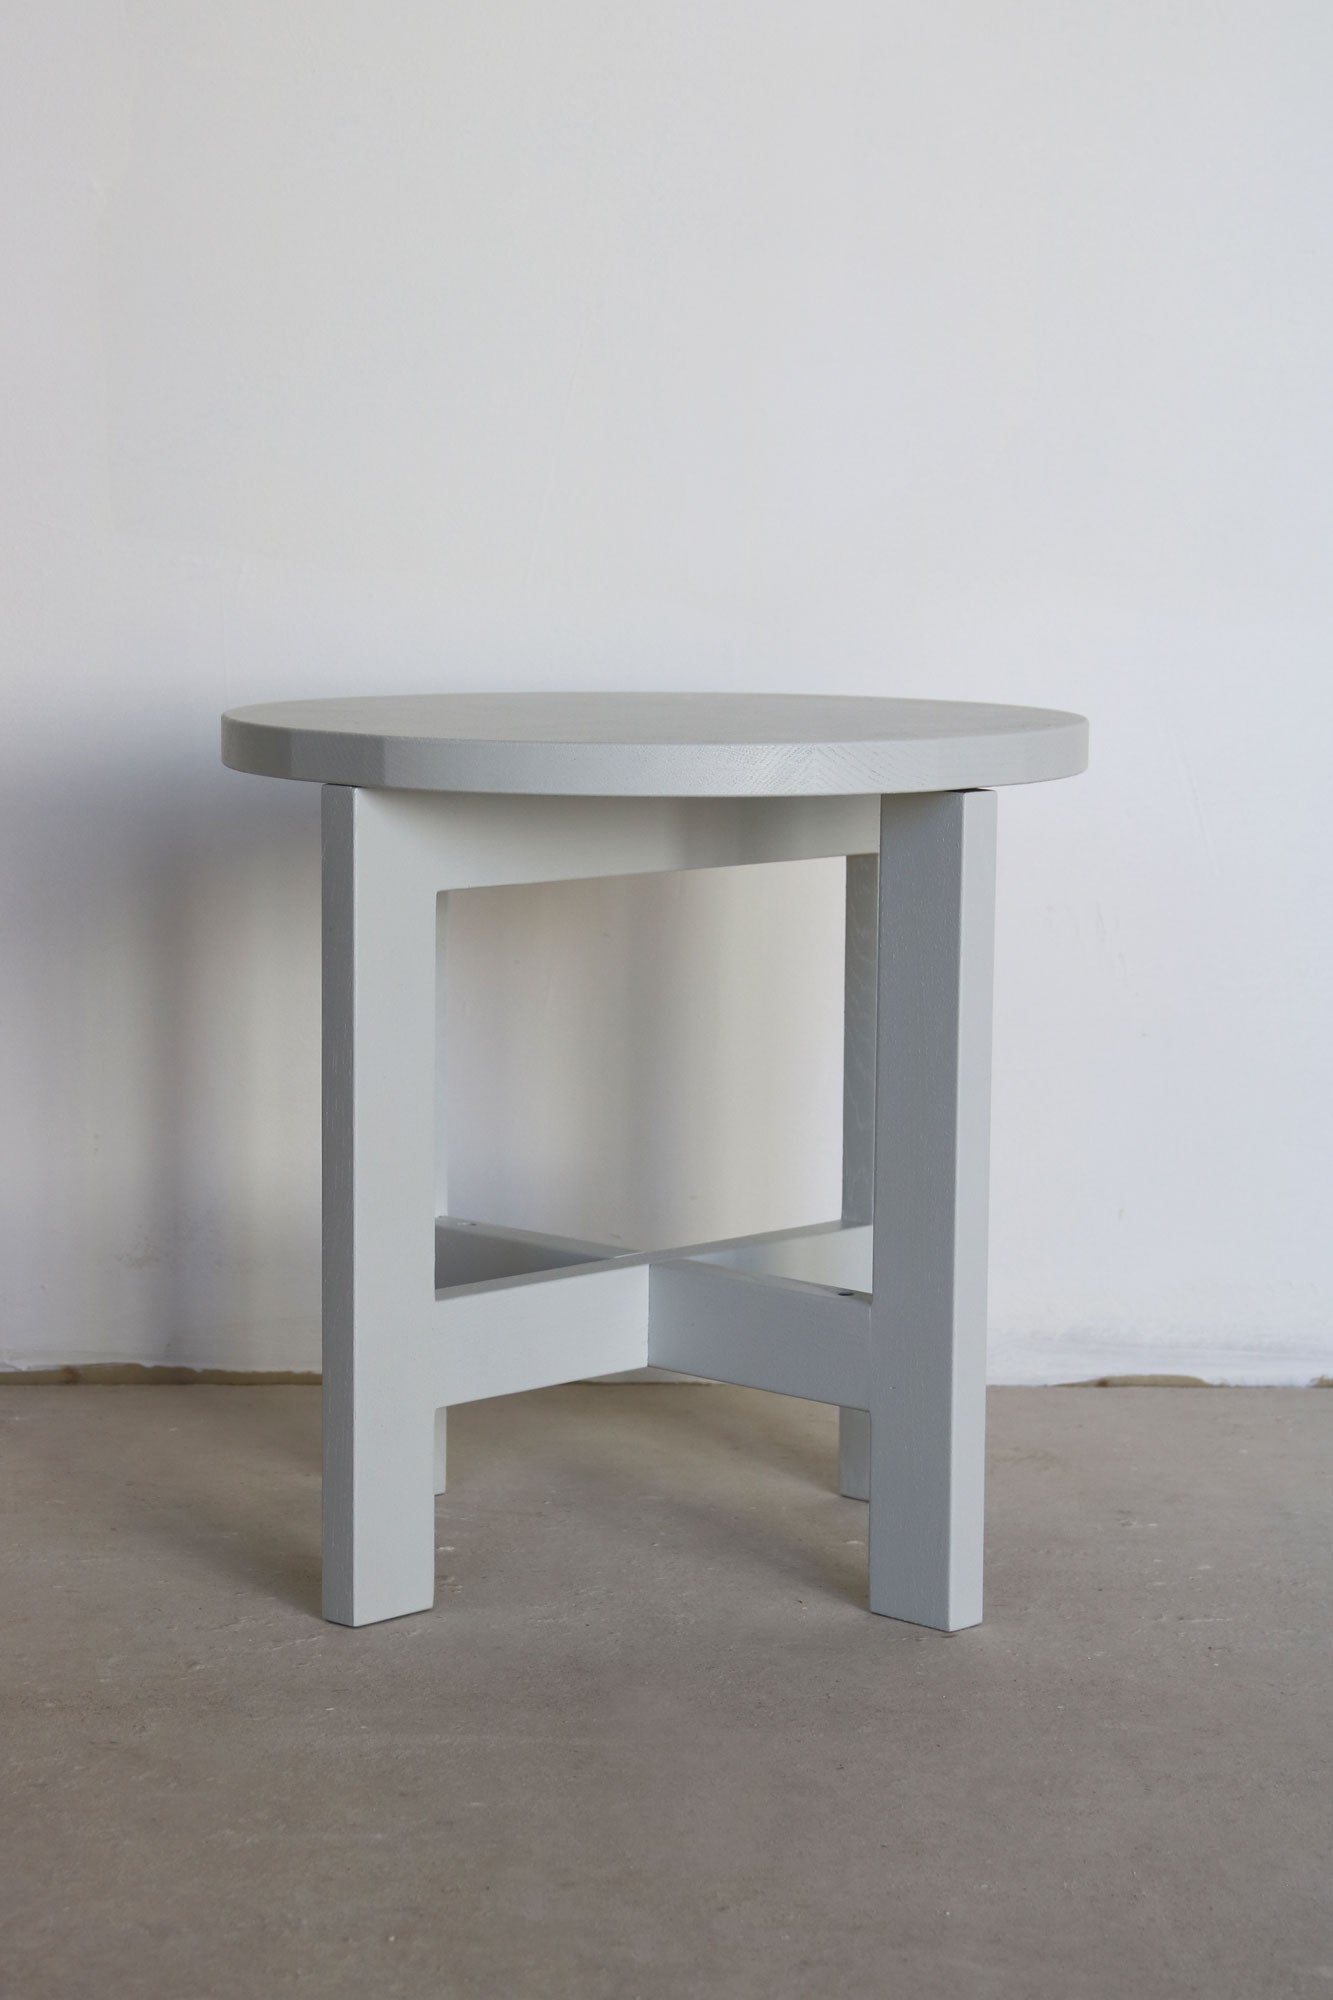 Sidetable Metall - Frontansicht